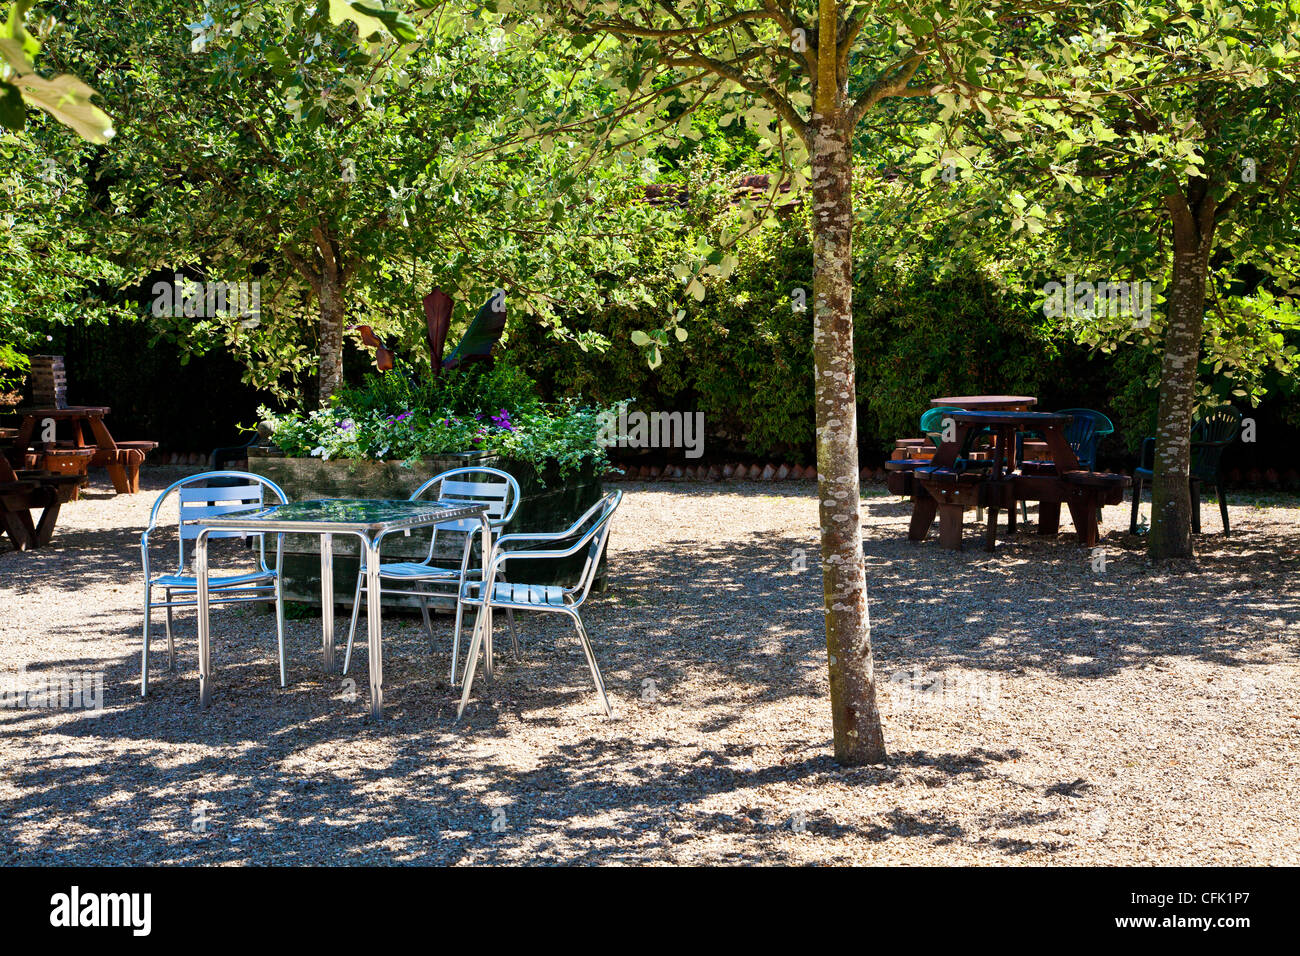 Cafe tables in dappled shade of trees on gravel patio in for Meaning of terrace in english